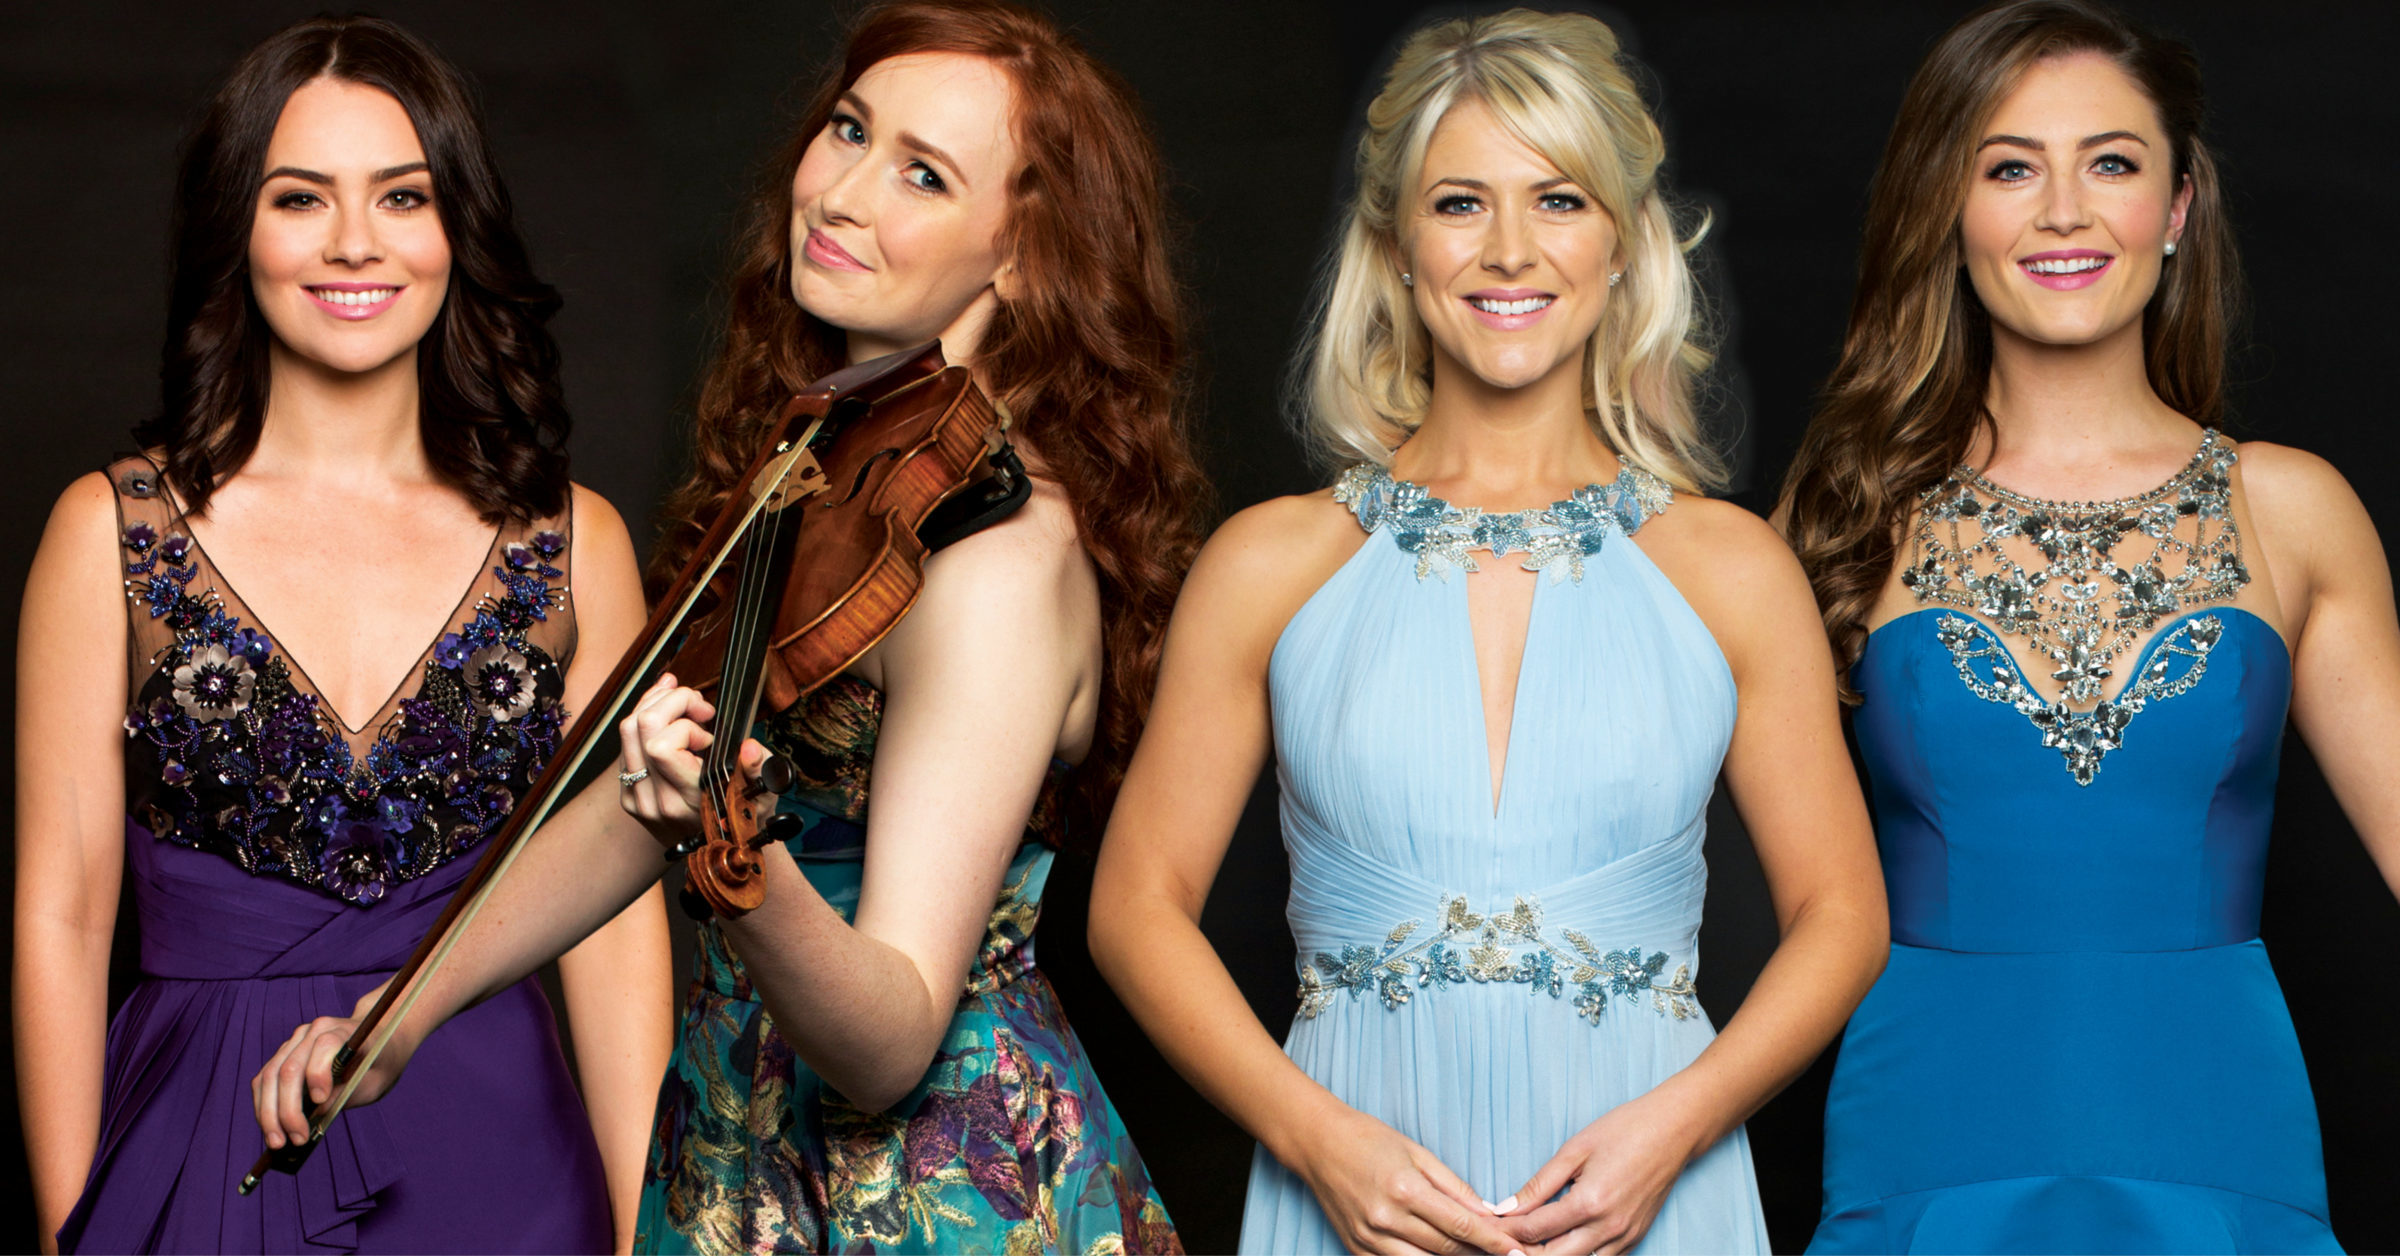 Meet Celtic Woman's Susan McFadden And Hear Her Perform On March 16